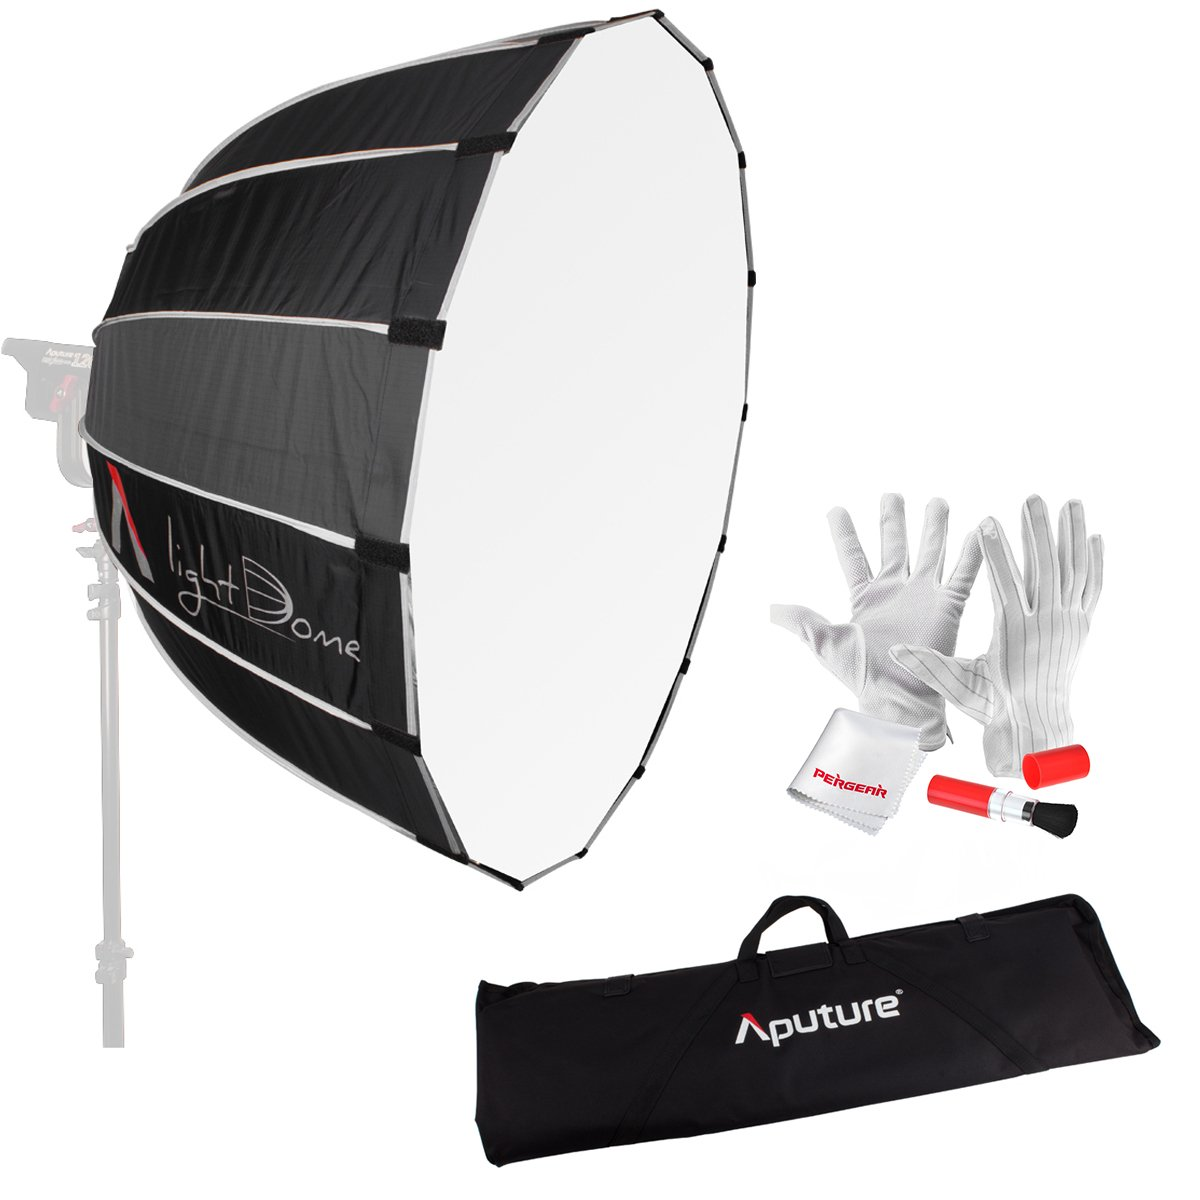 Aputure Light Dome 35'' Softbox with Bowen-S Speed Ring, Carrying Bag and Pergear Clean Kit for Aputure Light Storm COB 120t and Other Bowen-S Mount Lights